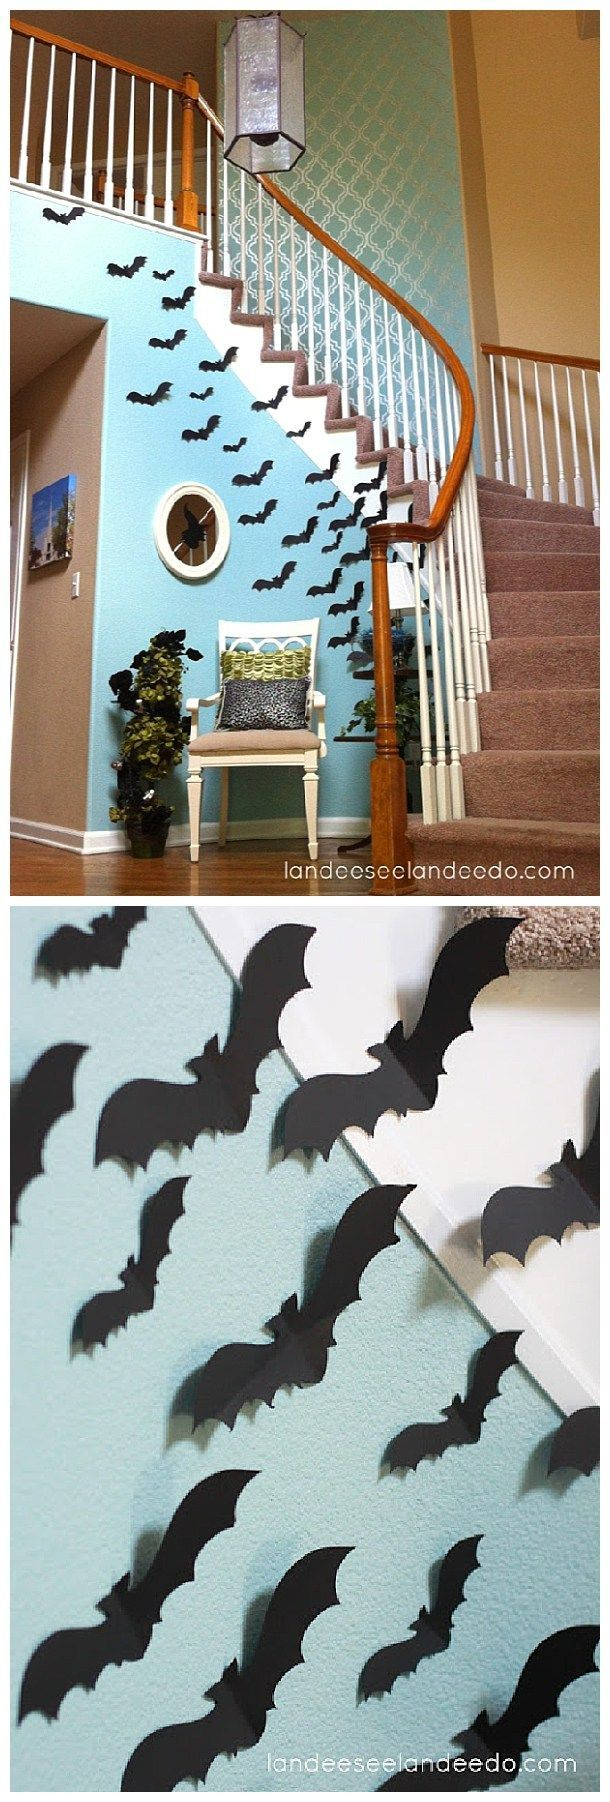 This is a fun idea for your entryway or front porch! Create a wall of BATS for your spooktacular Halloween Party lair!